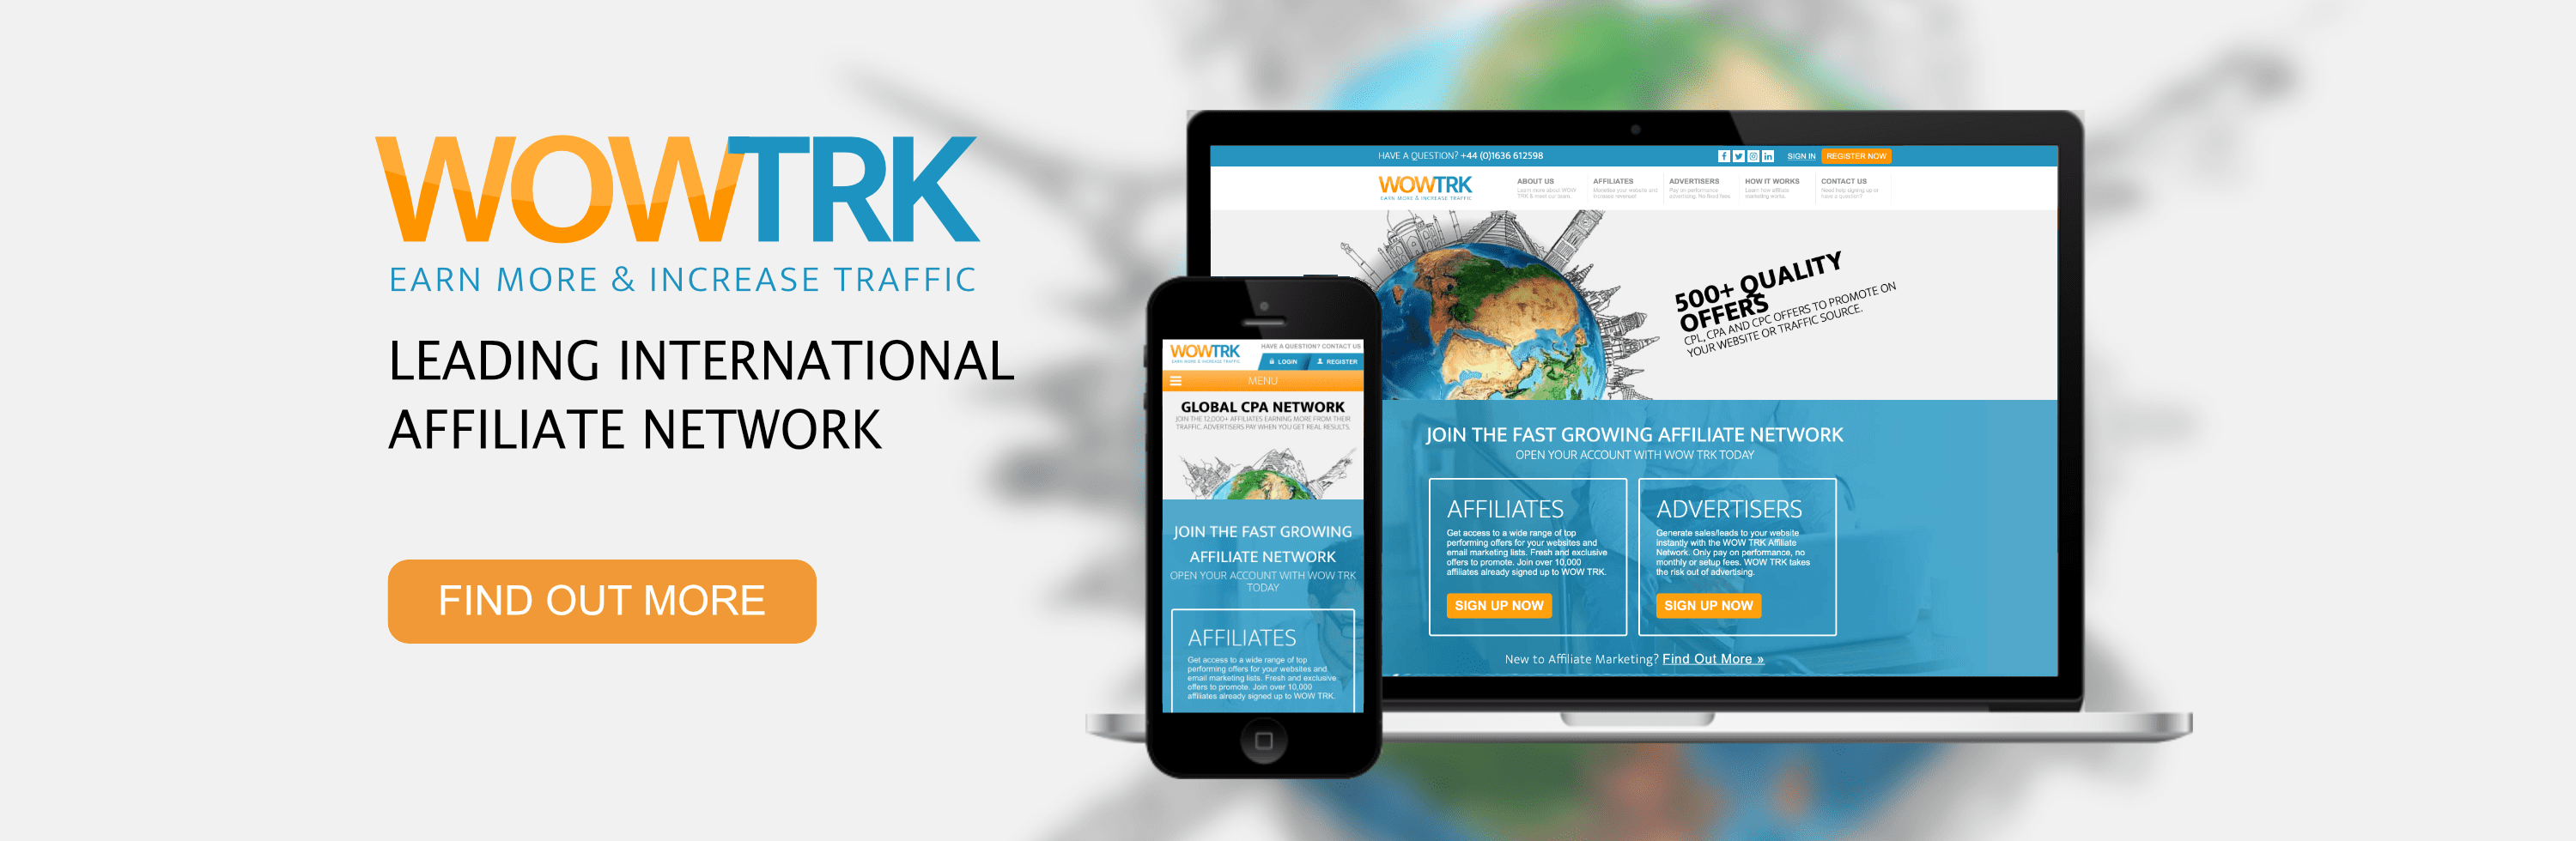 WOW TRK Affiliate Network